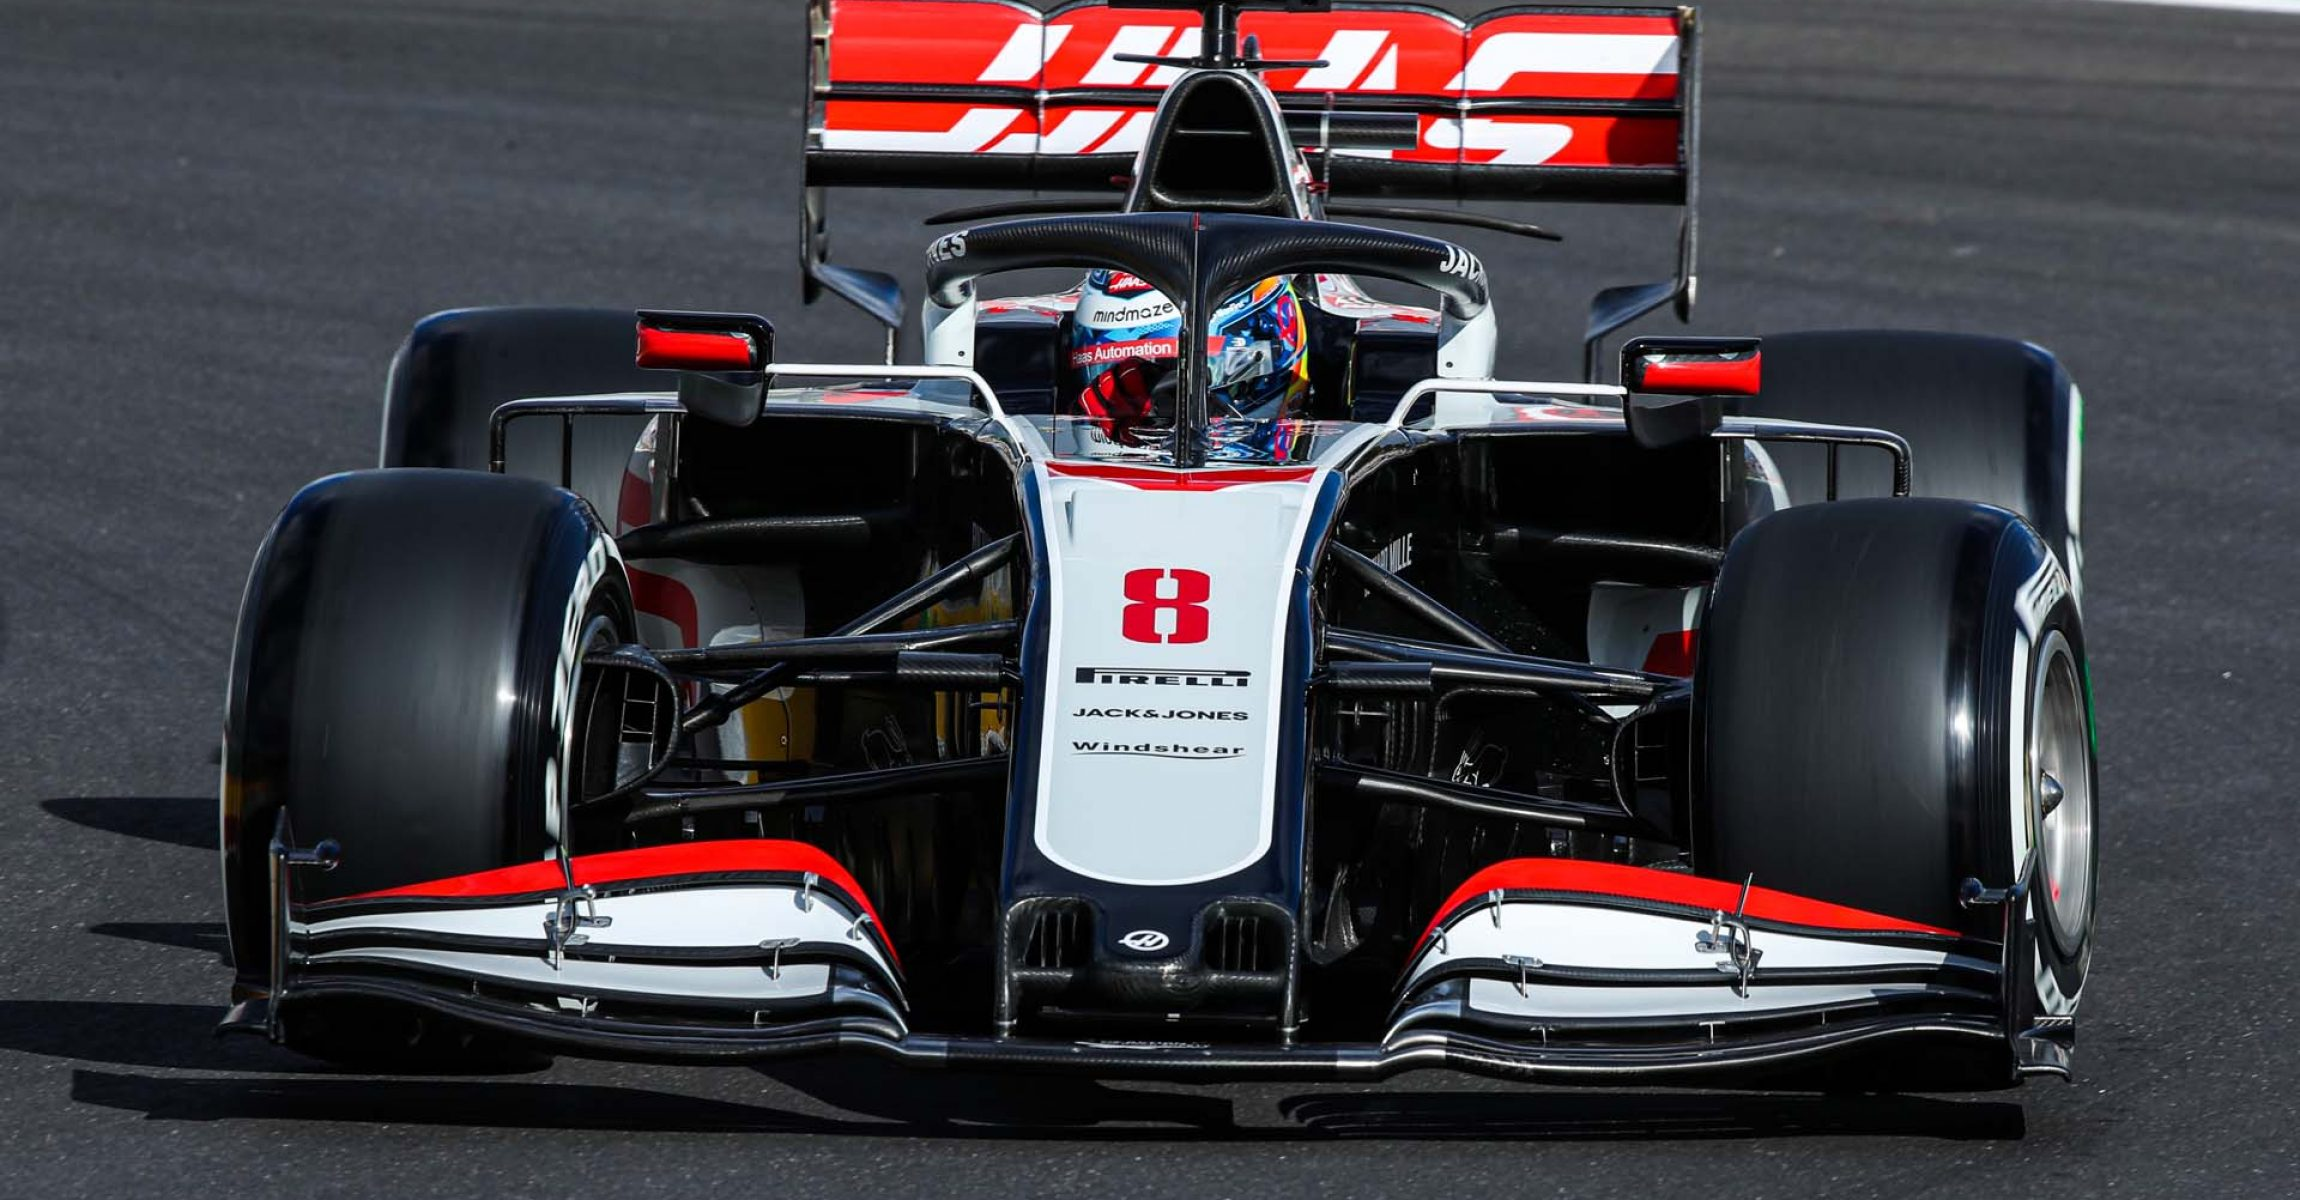 ALGARVE INTERNATIONAL CIRCUIT, PORTUGAL - OCTOBER 23: Romain Grosjean, Haas VF-20 during the Portuguese GP at Algarve International Circuit on Friday October 23, 2020, Portugal. (Photo by Charles Coates / LAT Images)